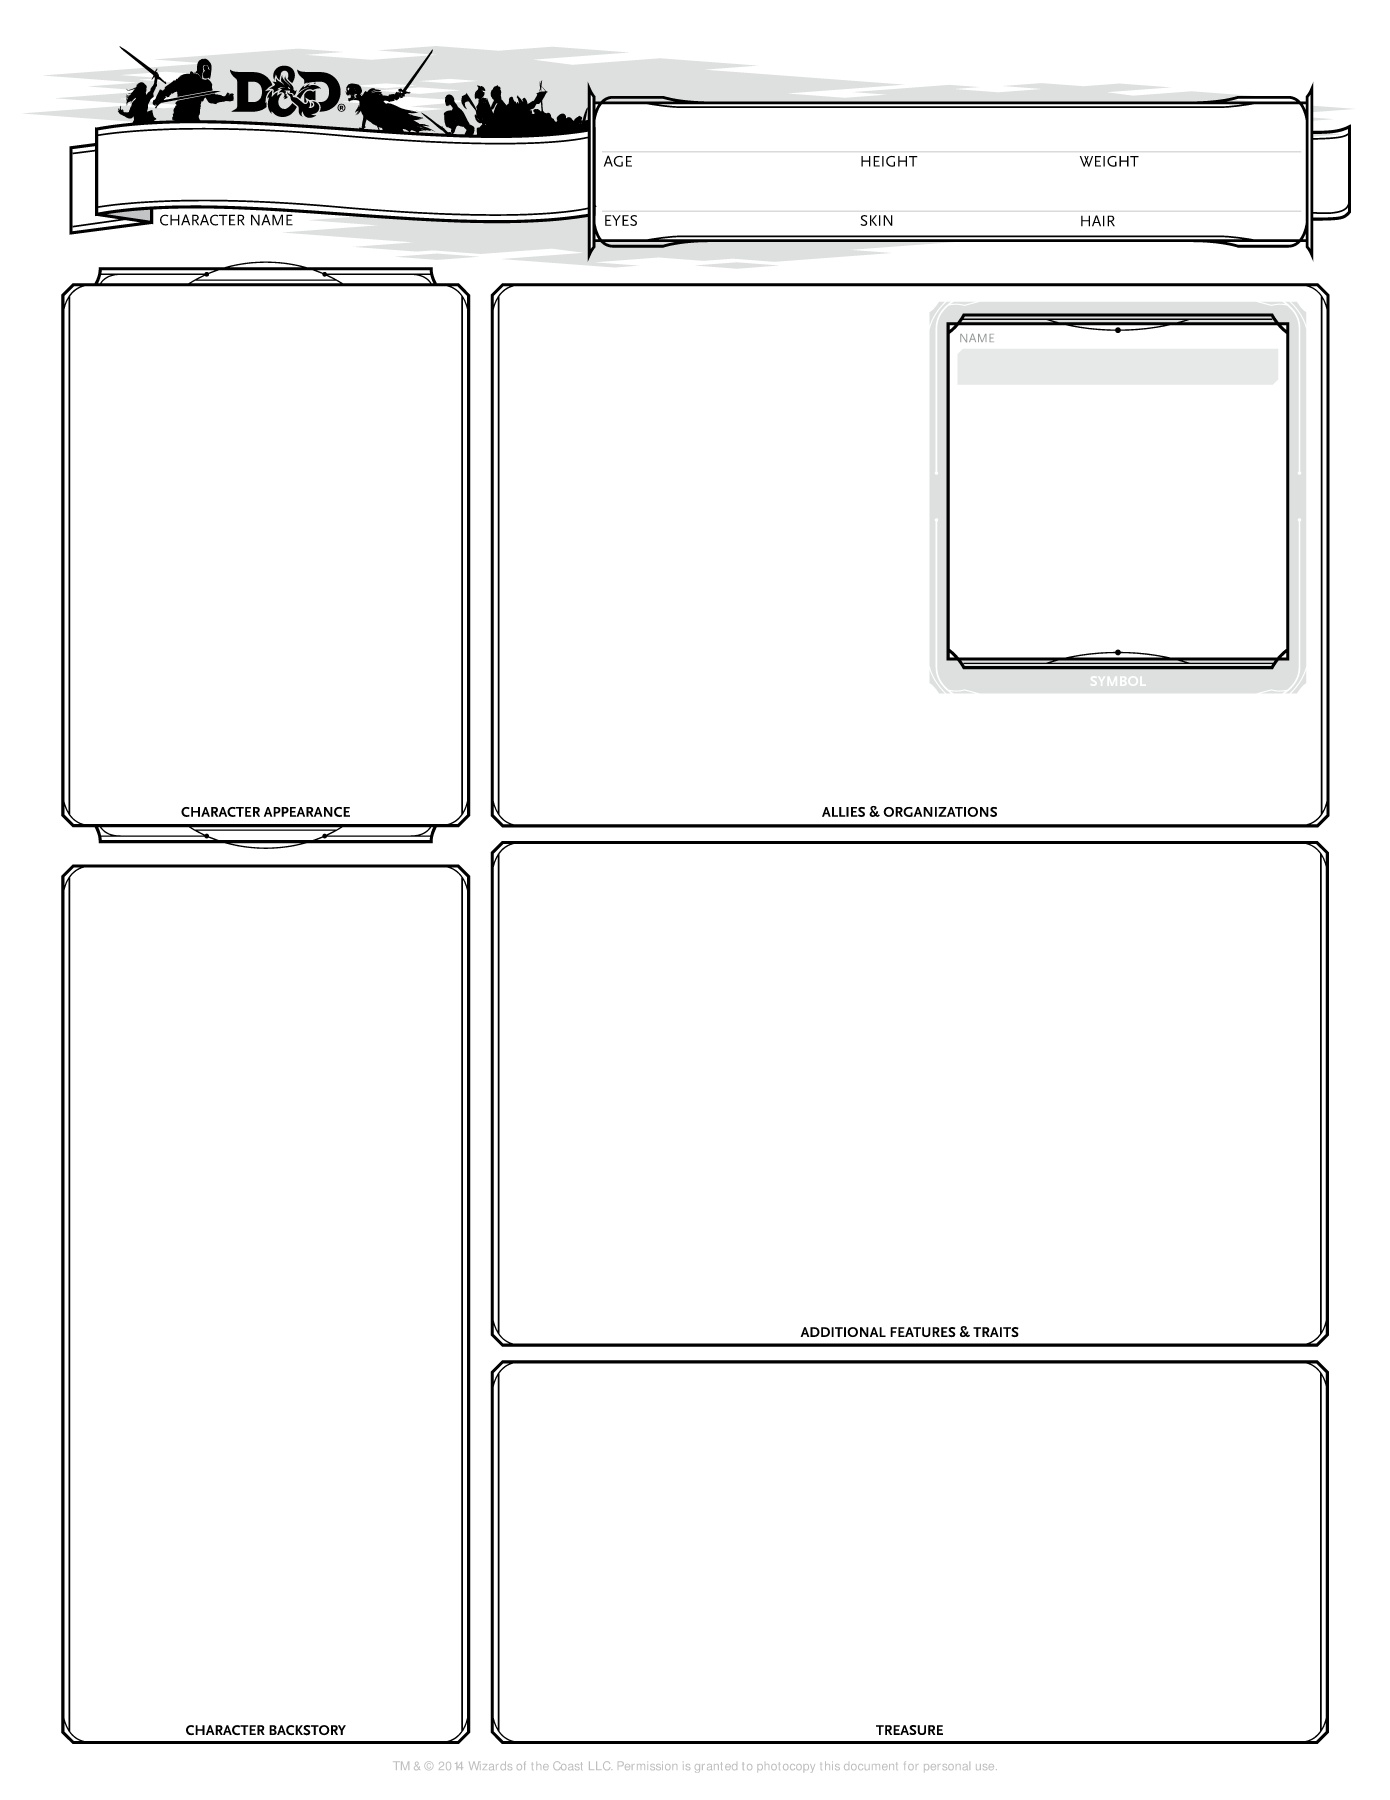 image relating to Printable Dnd Character Sheet identify TWC-DnD-5E-Persona-Sheet-v1.3